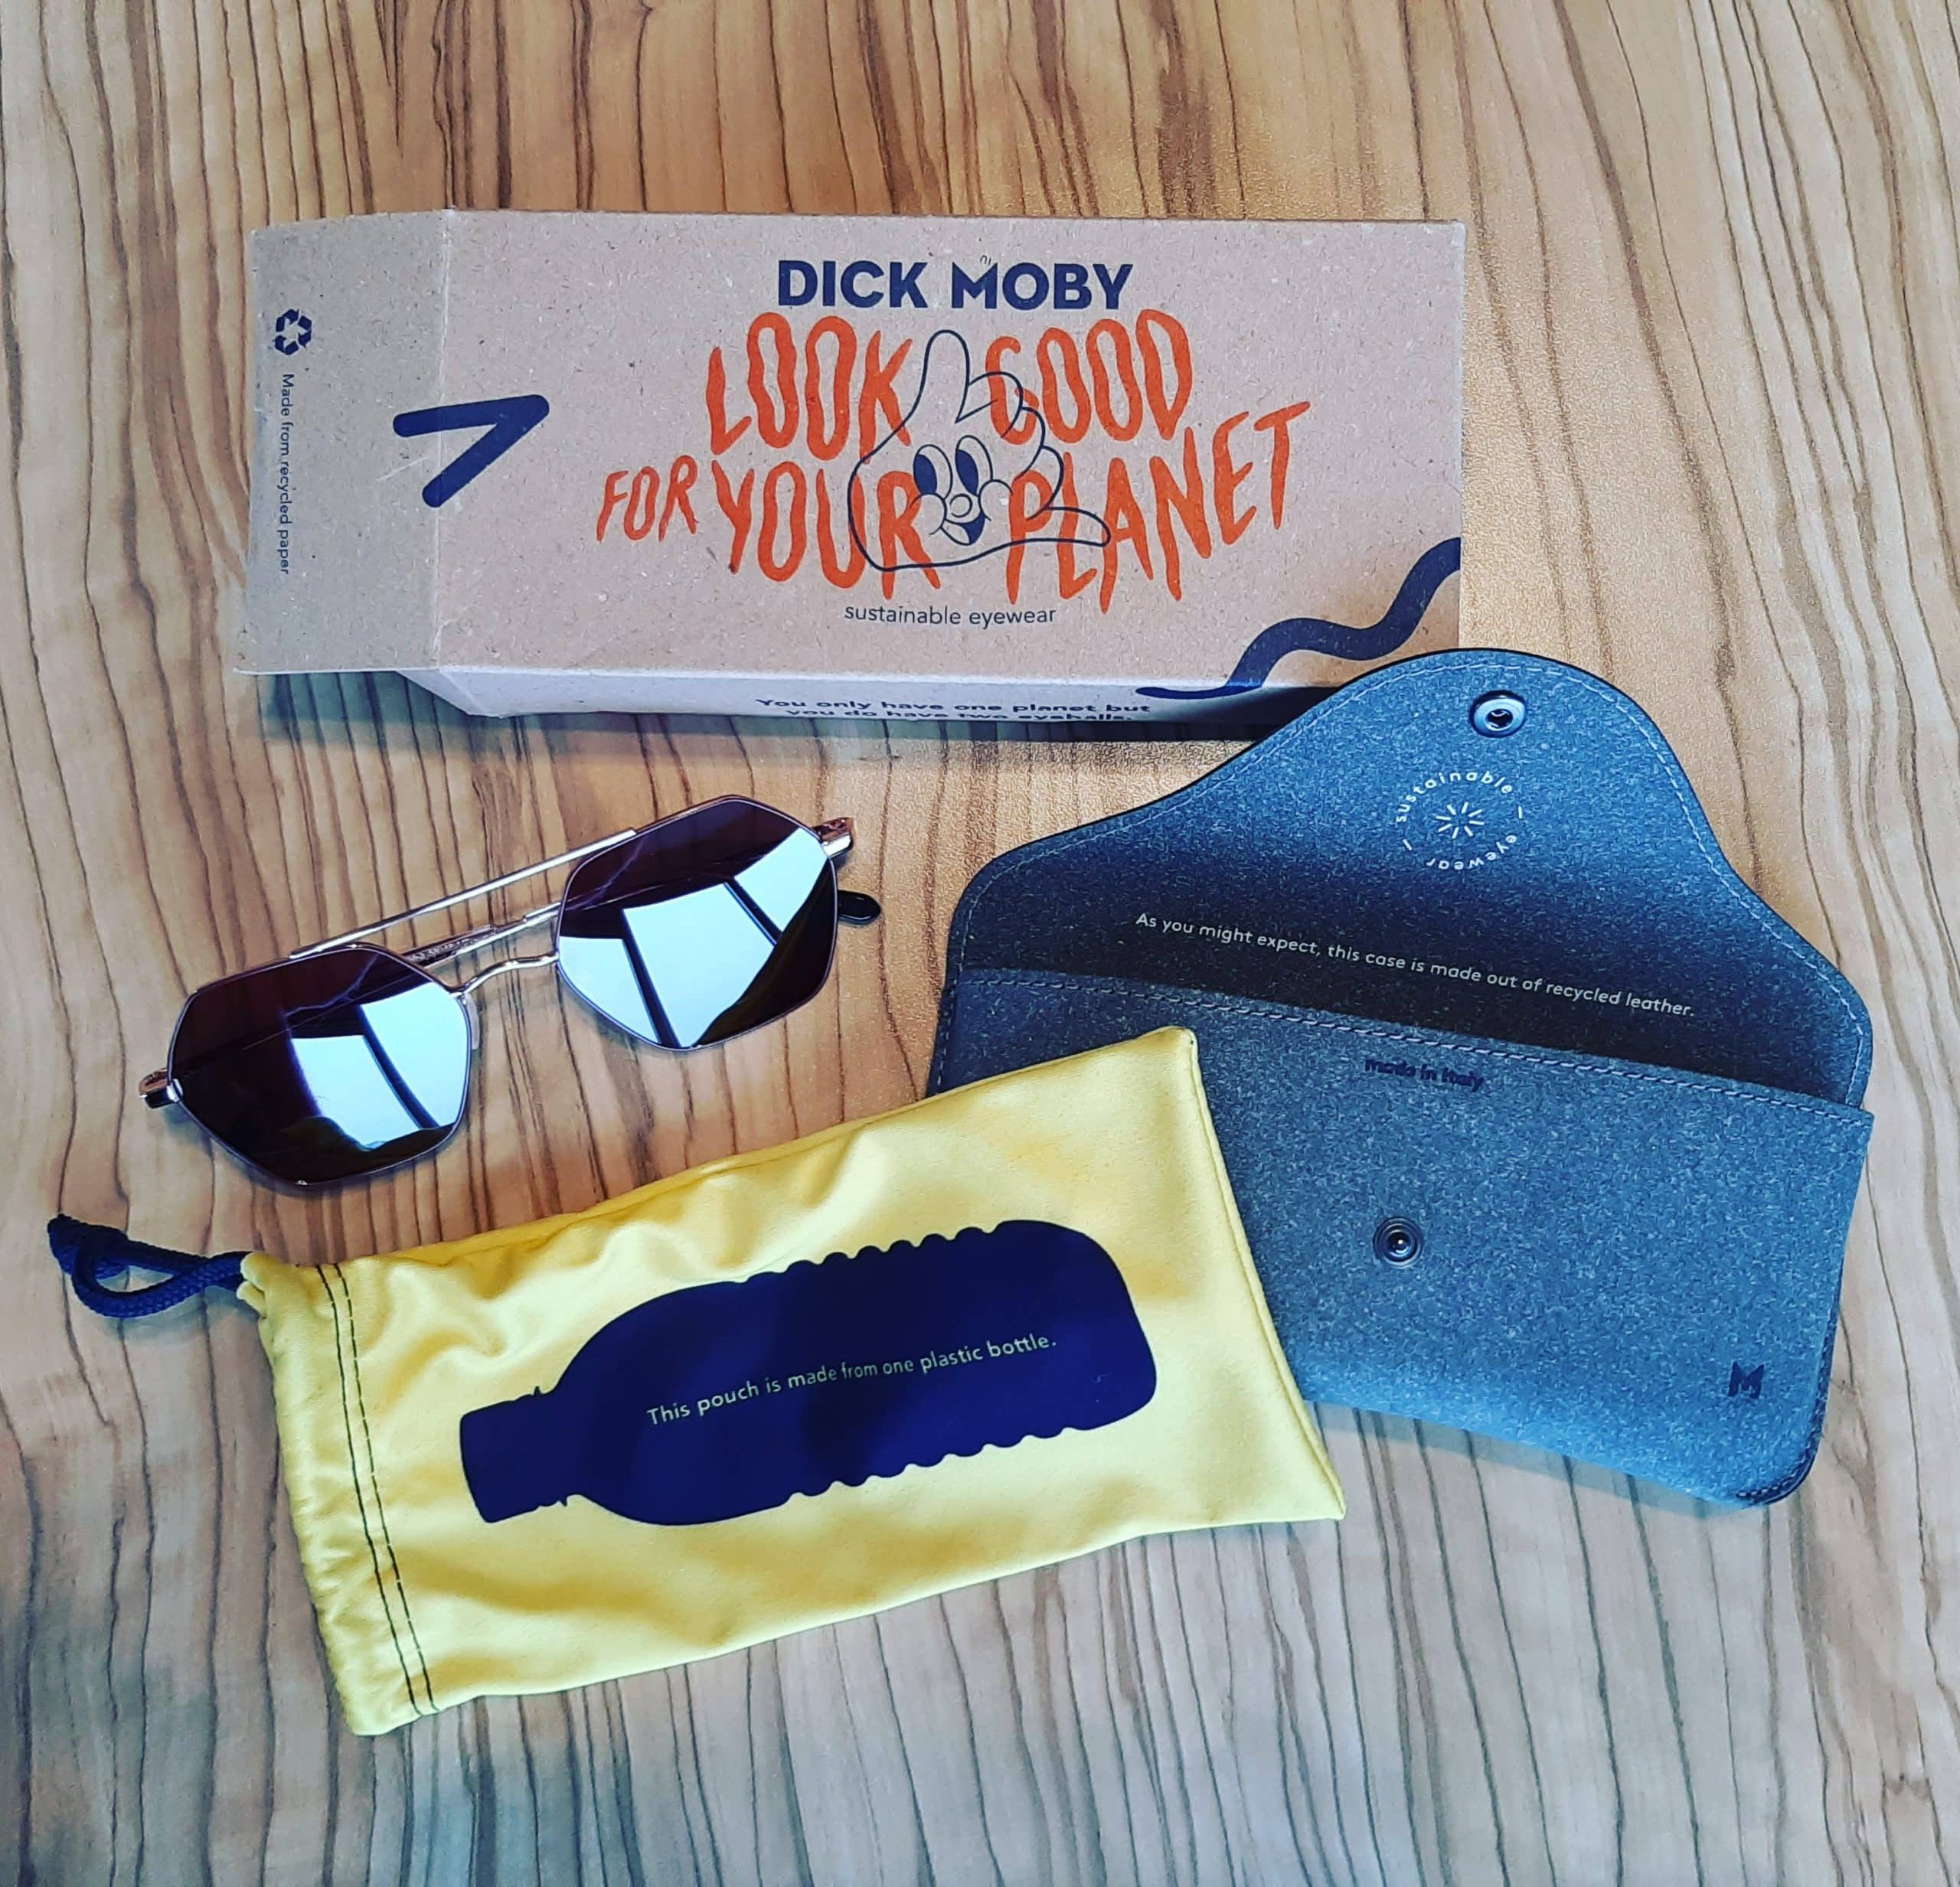 Dick Moby eco friendly sunglasses